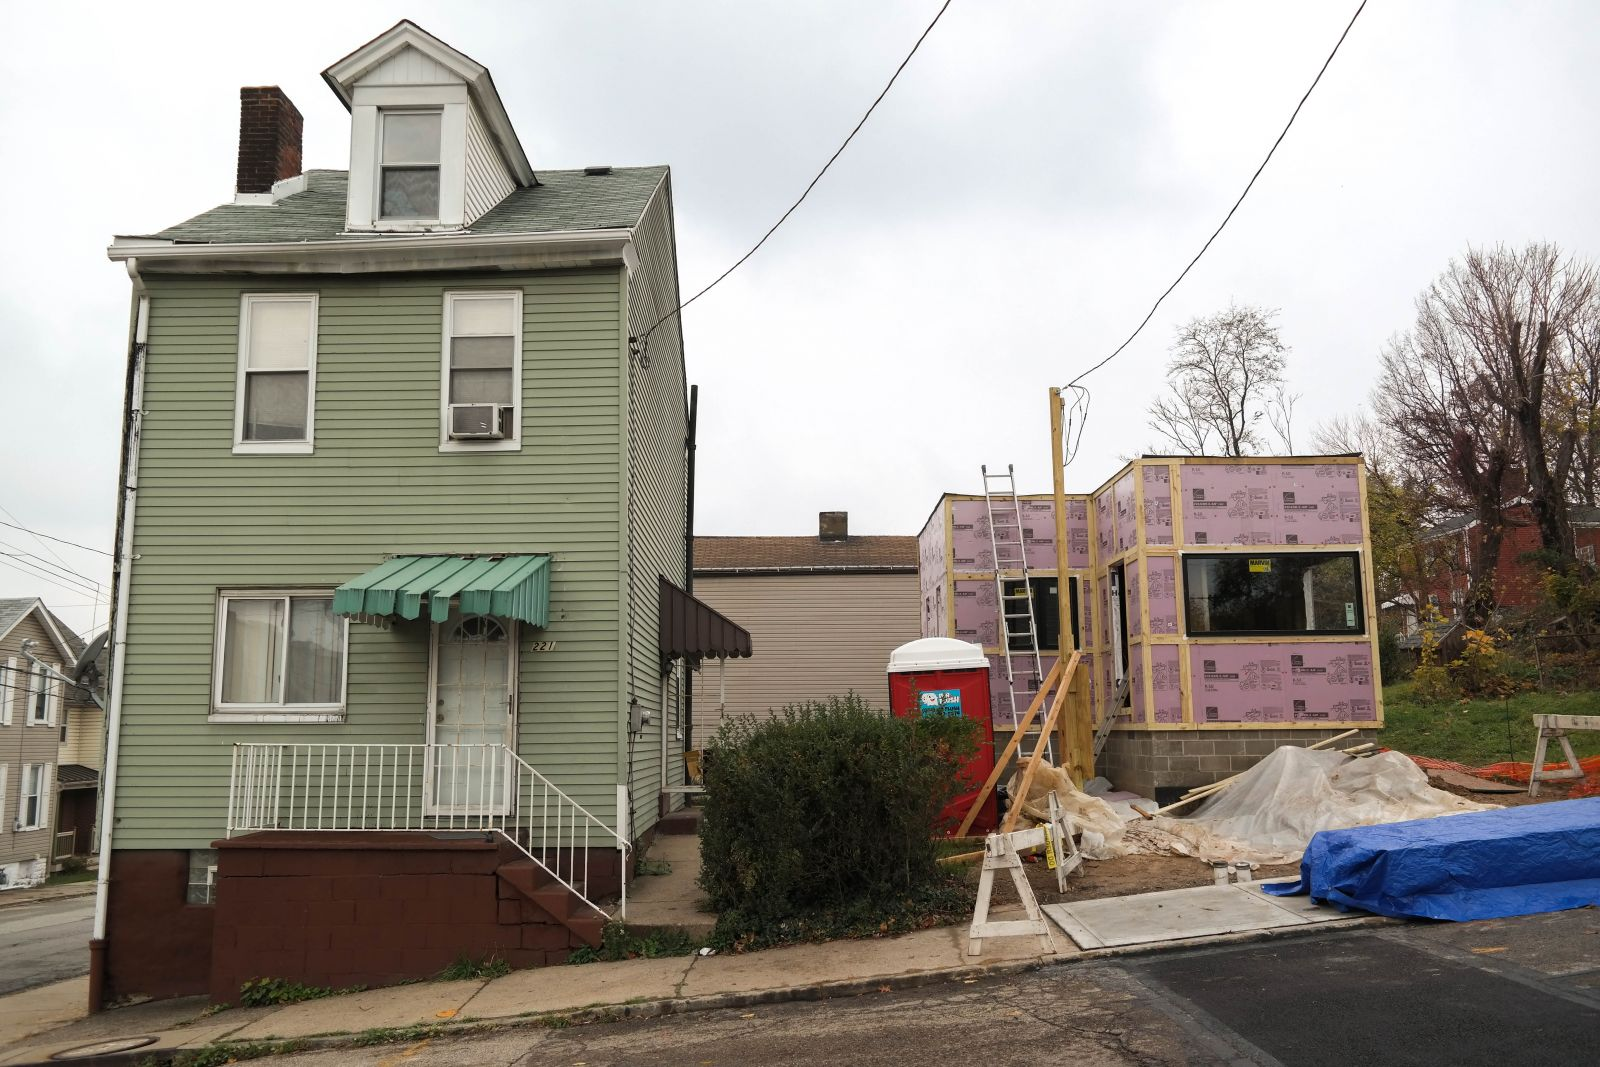 Side by side: The 330-square-foot tiny house, compared to the neighboring house on N. Atlantic Avenue. The tiny house is being built on a lot that has been vacant for years. Photo: Lou Blouin